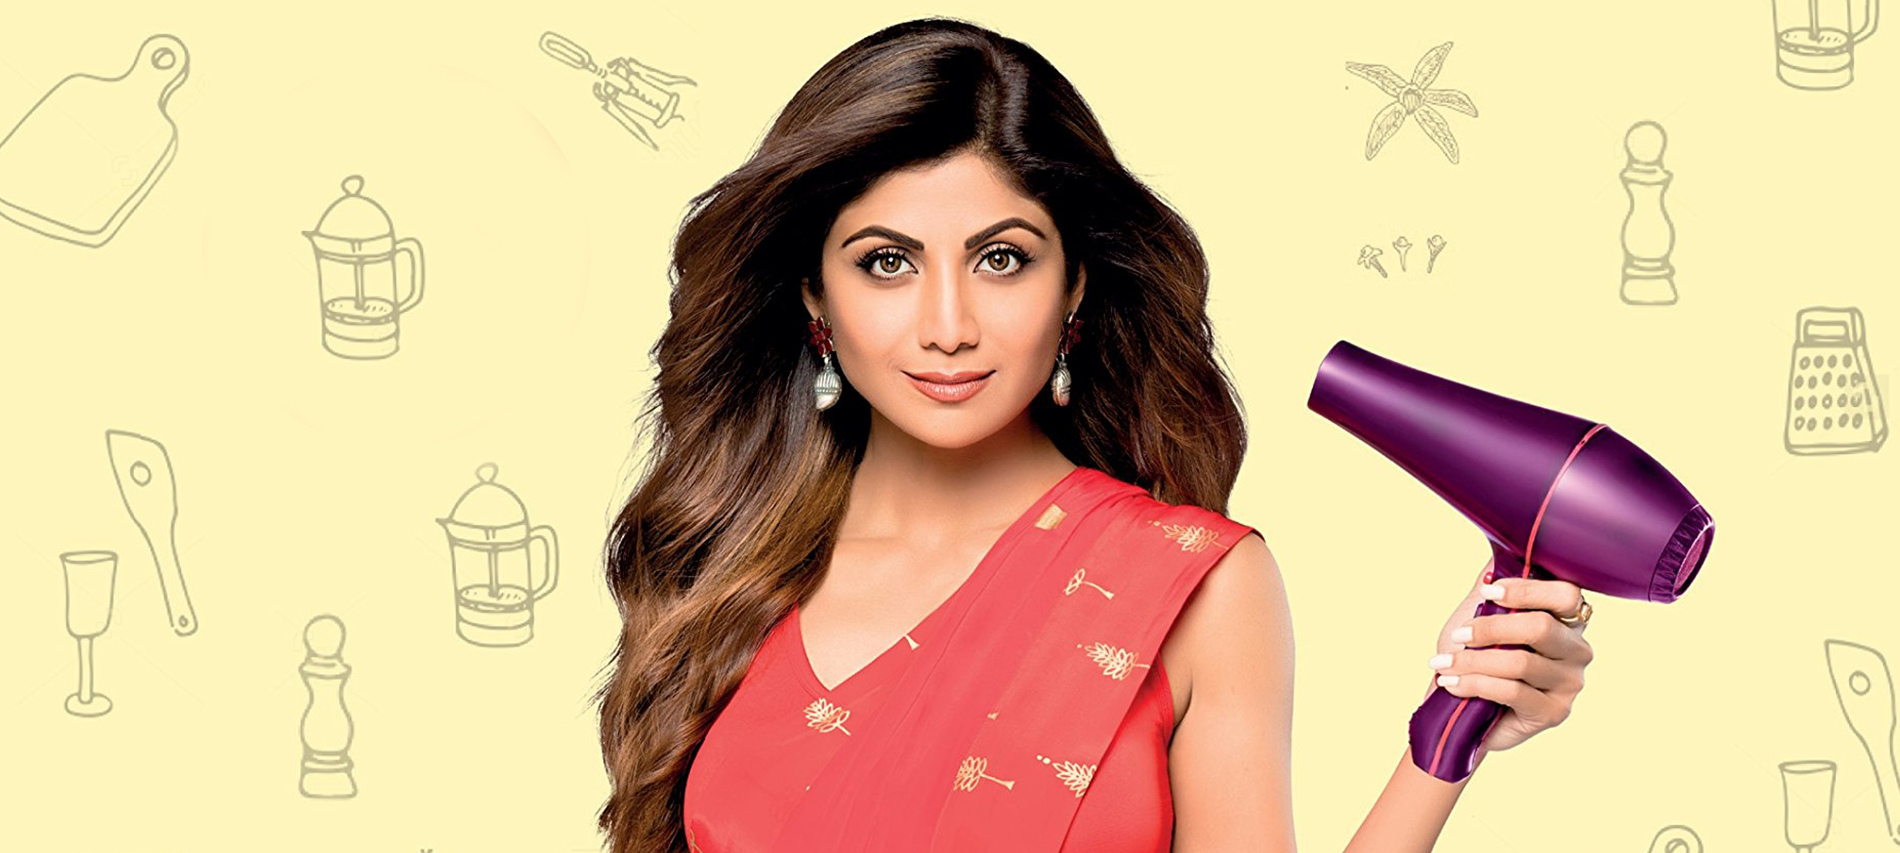 The Diary of a Domestic Diva by Shilpa Shetty Kundra – An Excerpt